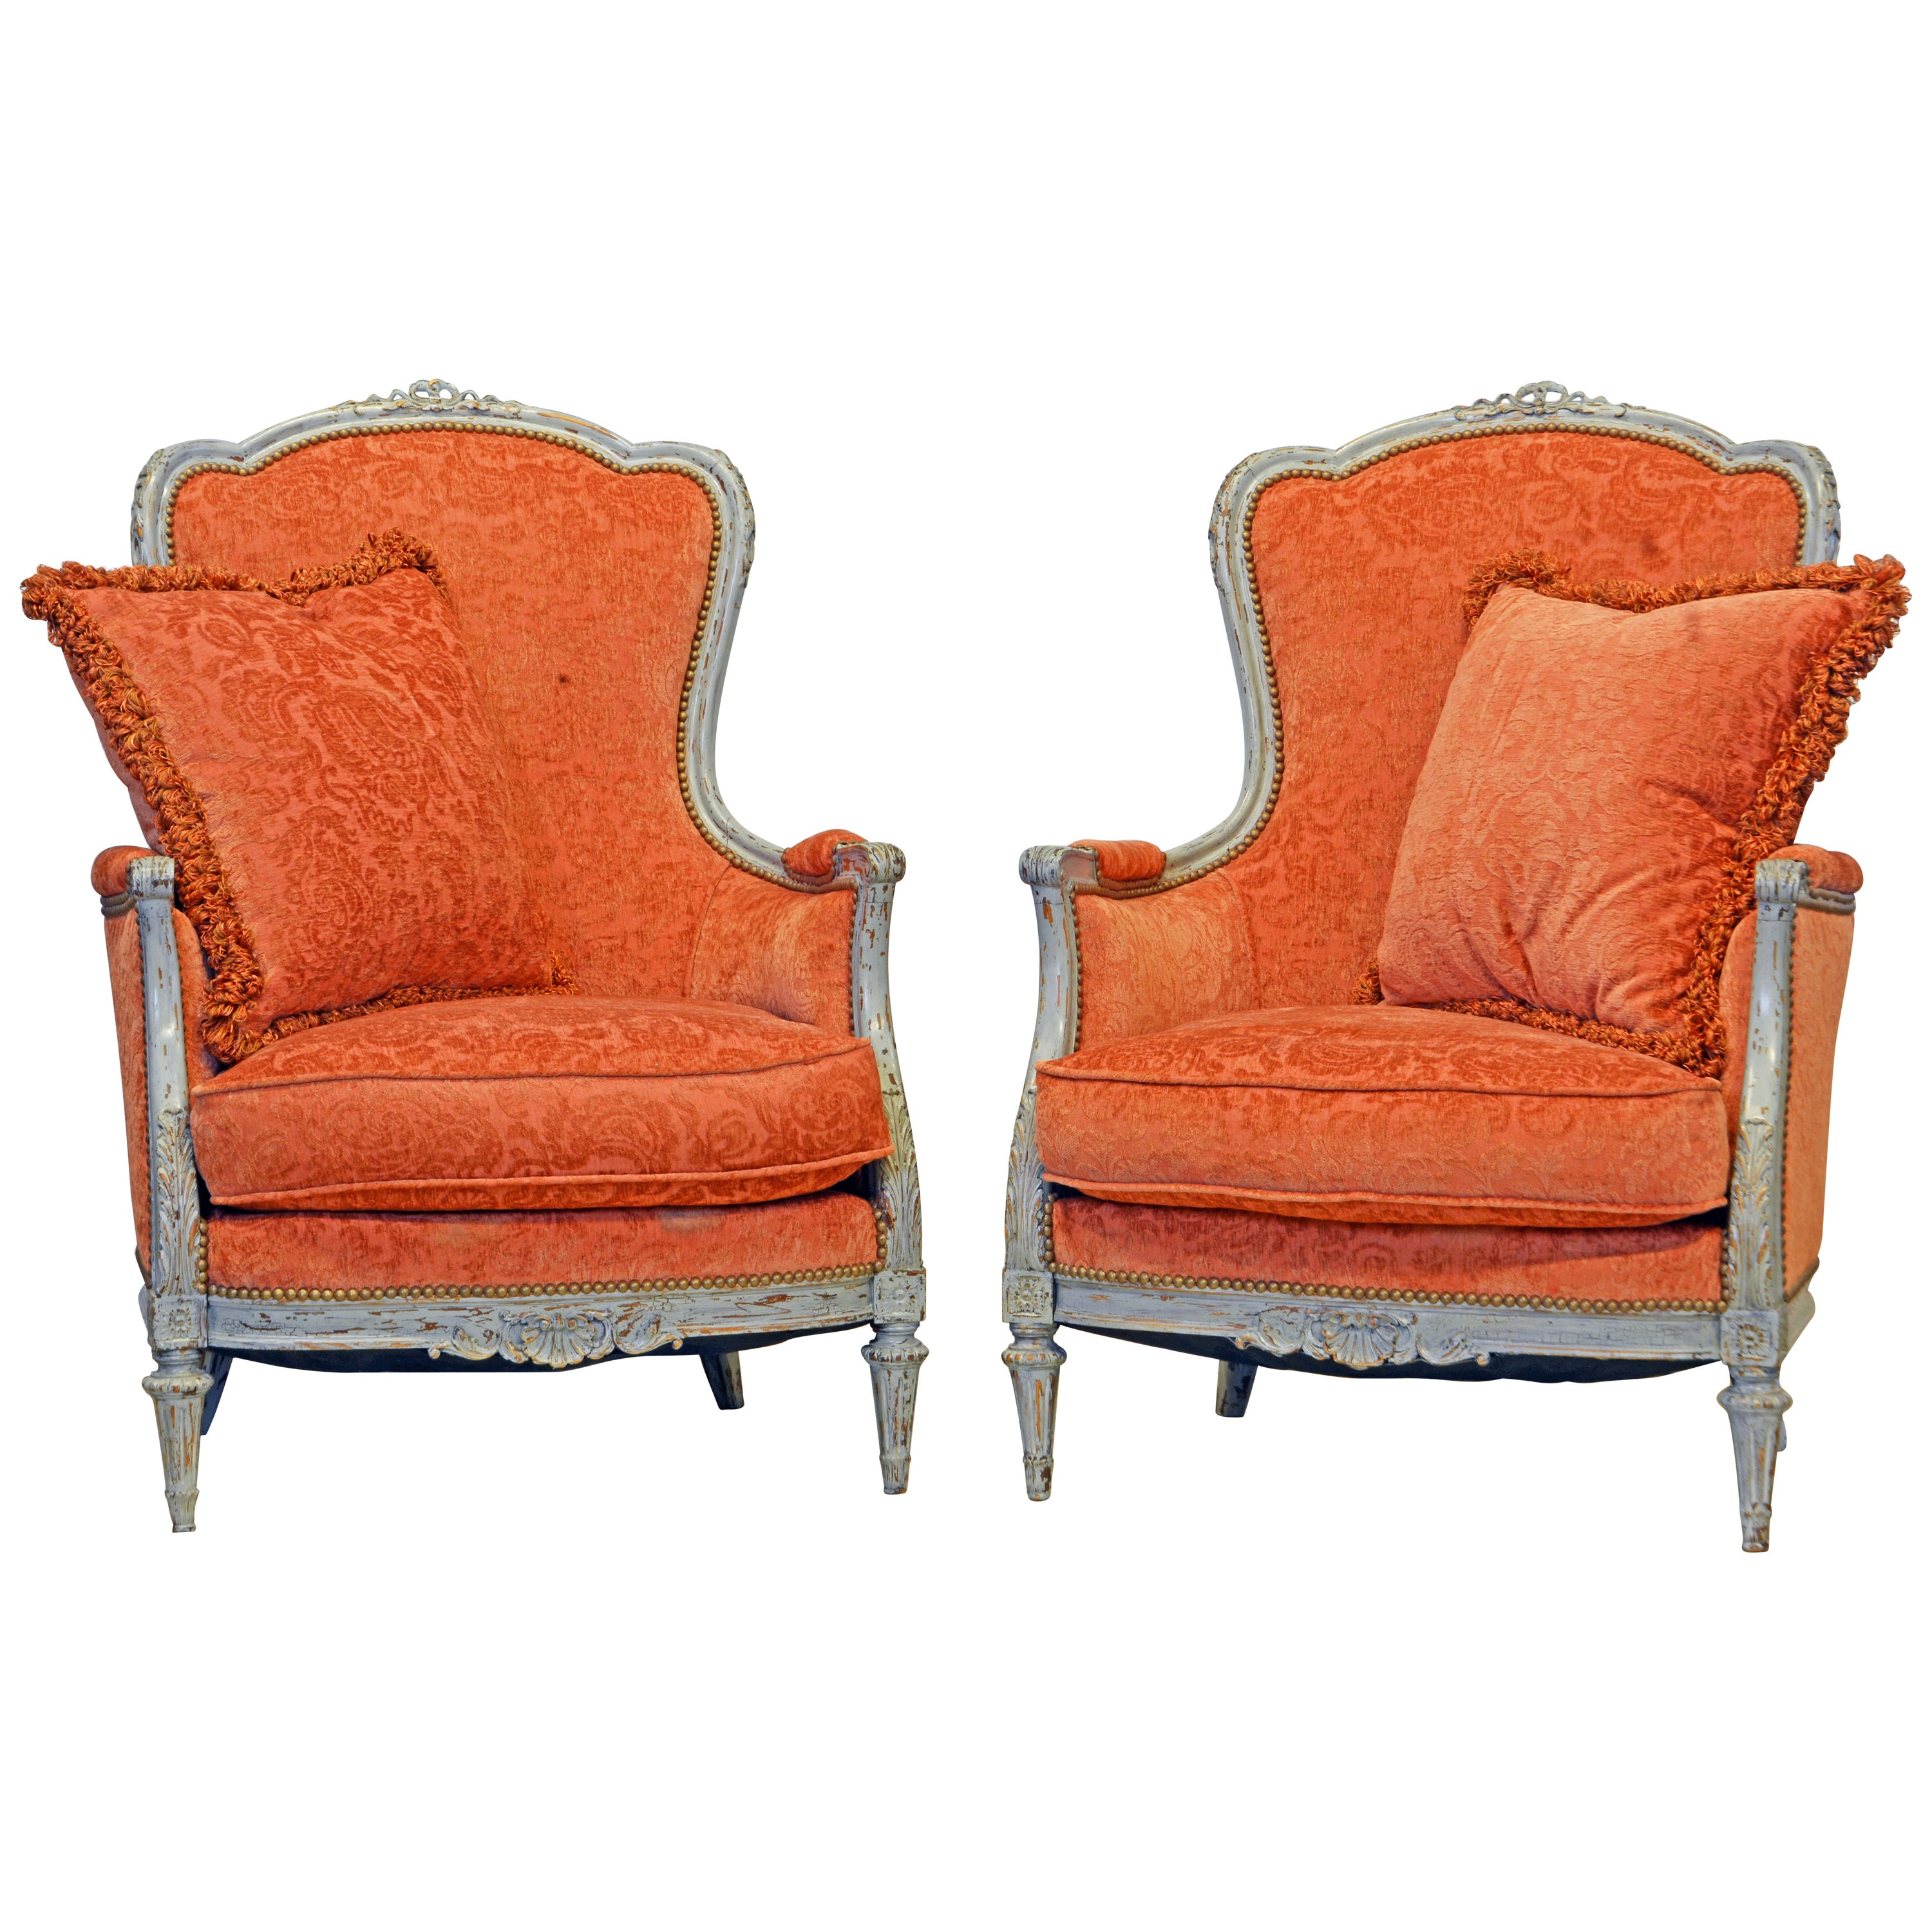 Pair of French Belle Époque Louis XVI Style Gray Painted Bergère Chairs